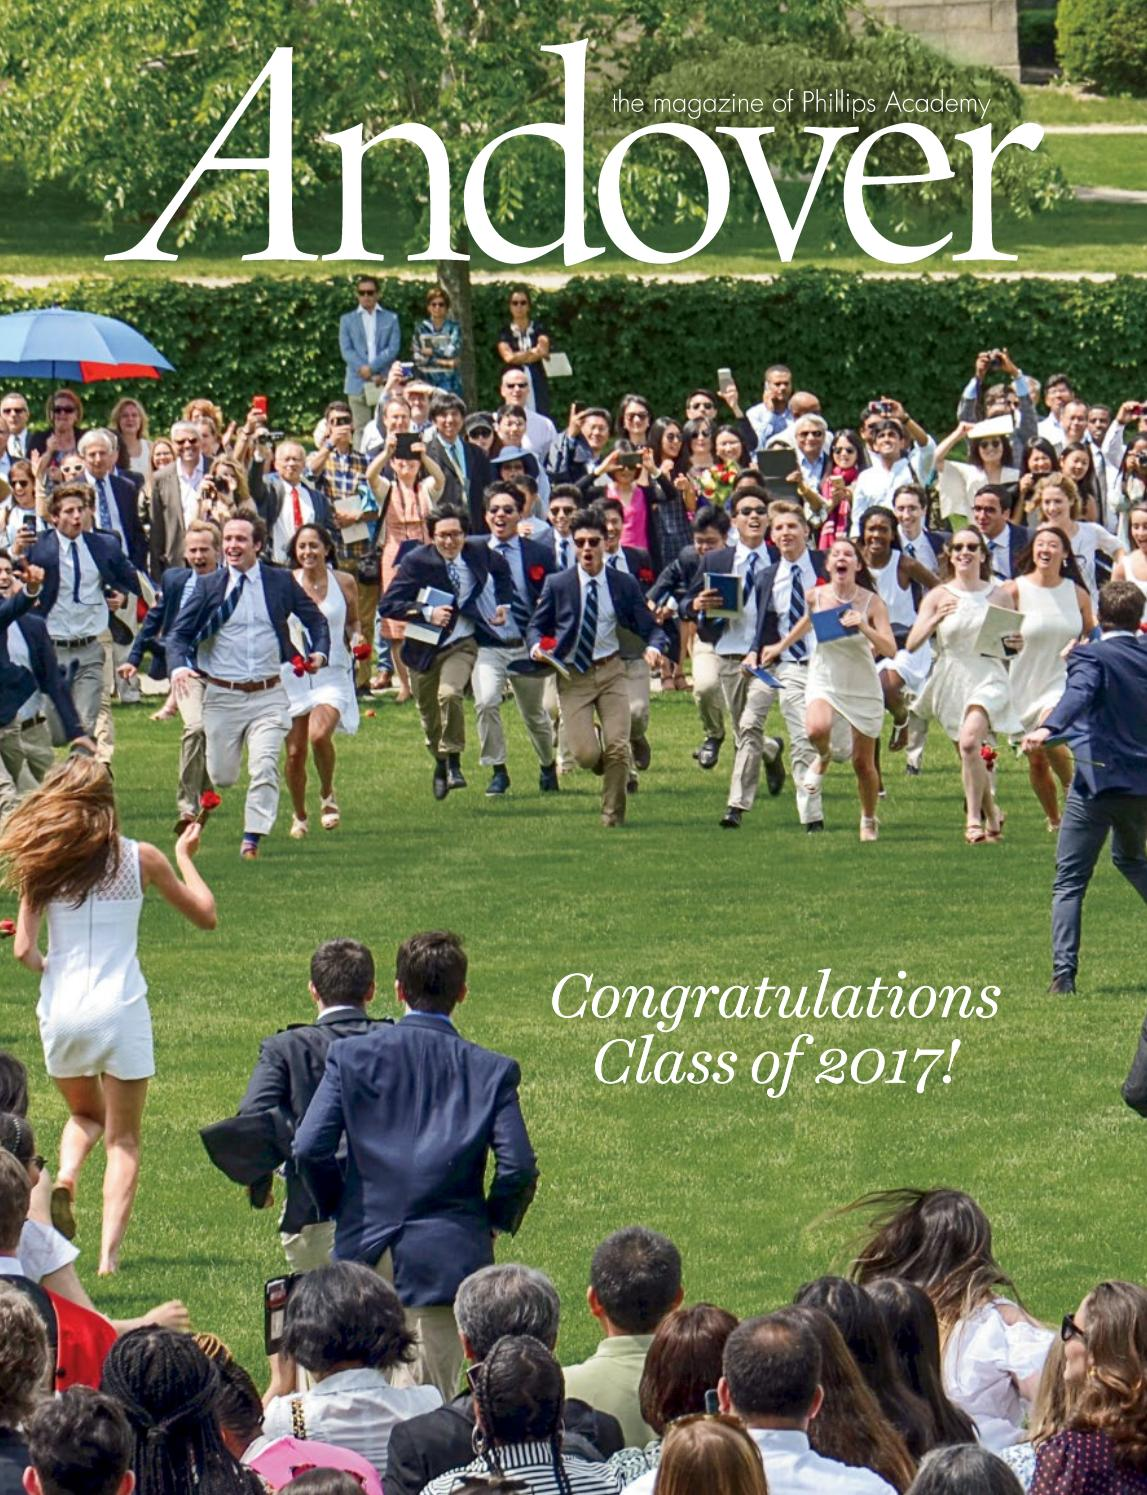 Number 1 Cochran >> Andover magazine - Commencement 2017 by Phillips Academy - Issuu